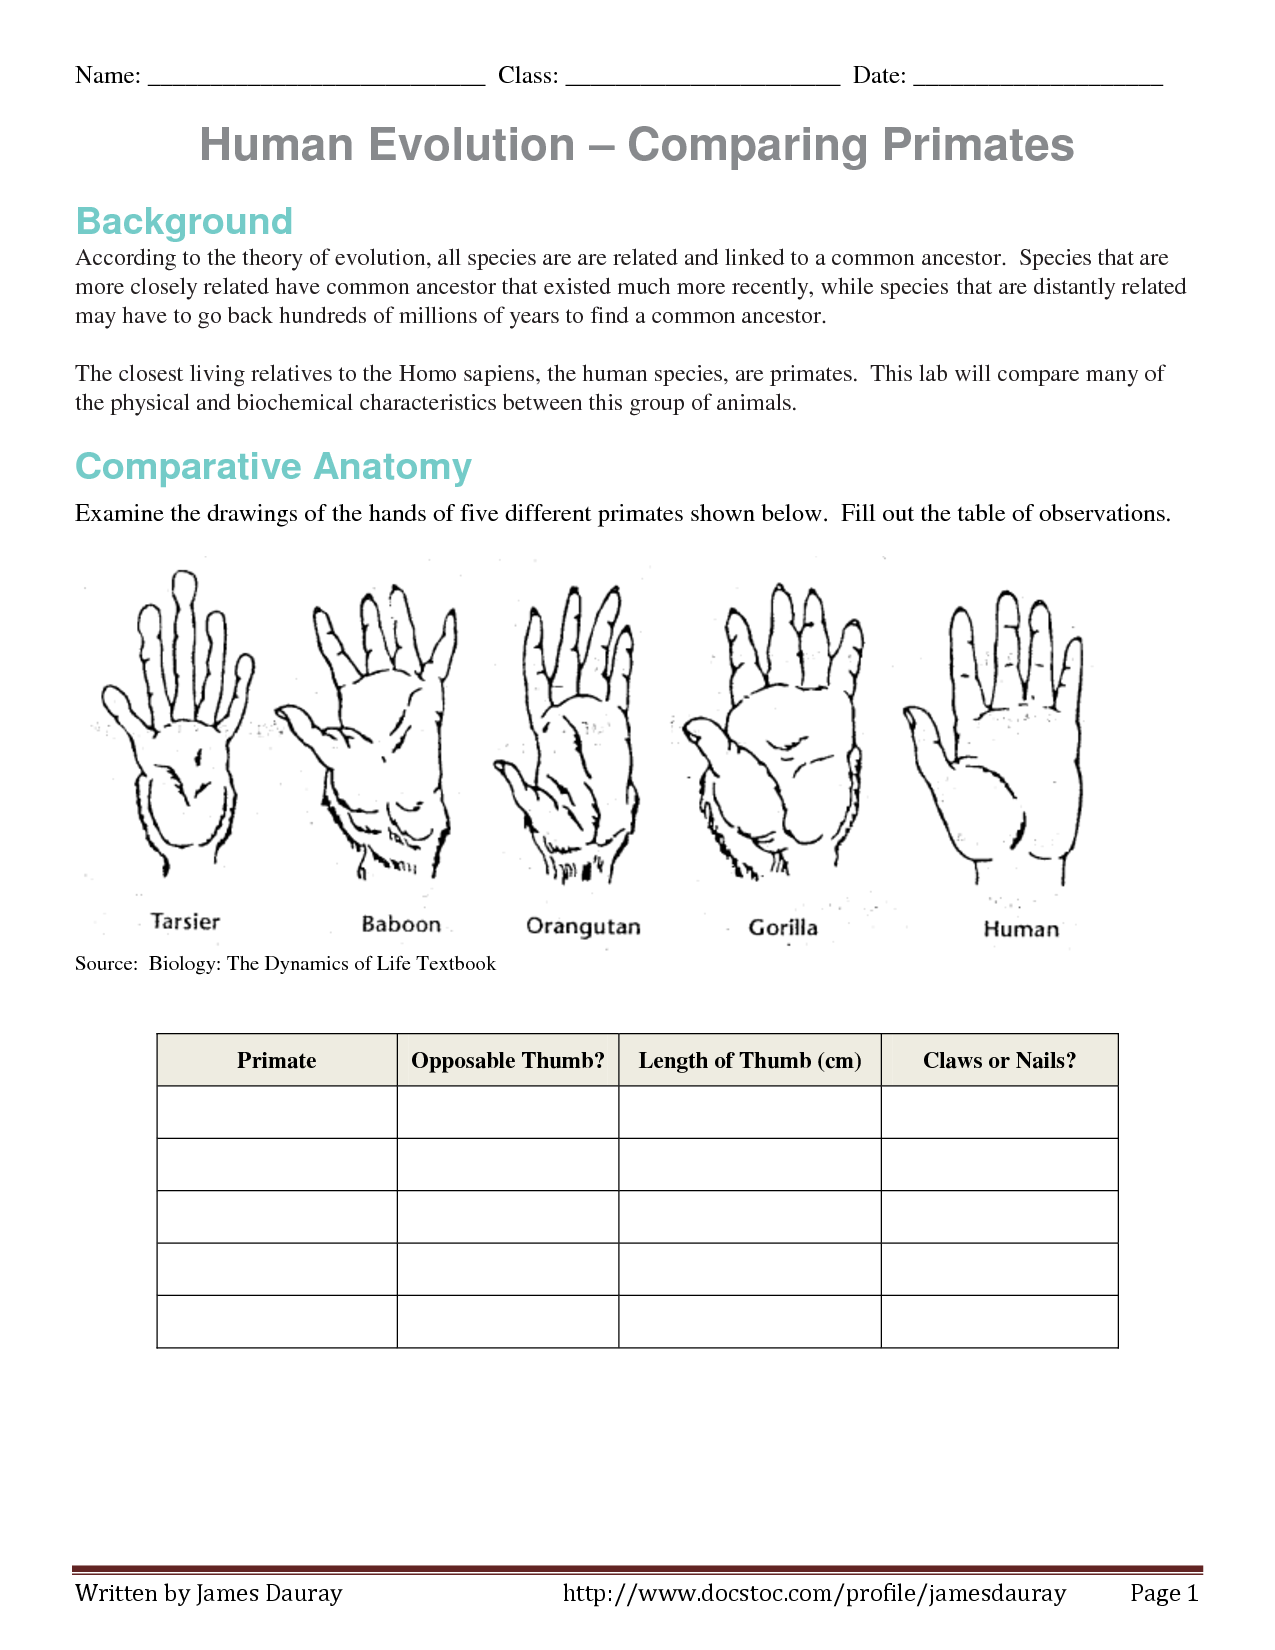 worksheet Bill Nye Evolution Worksheet evolution of human thumb evidence worksheet comparing primates by